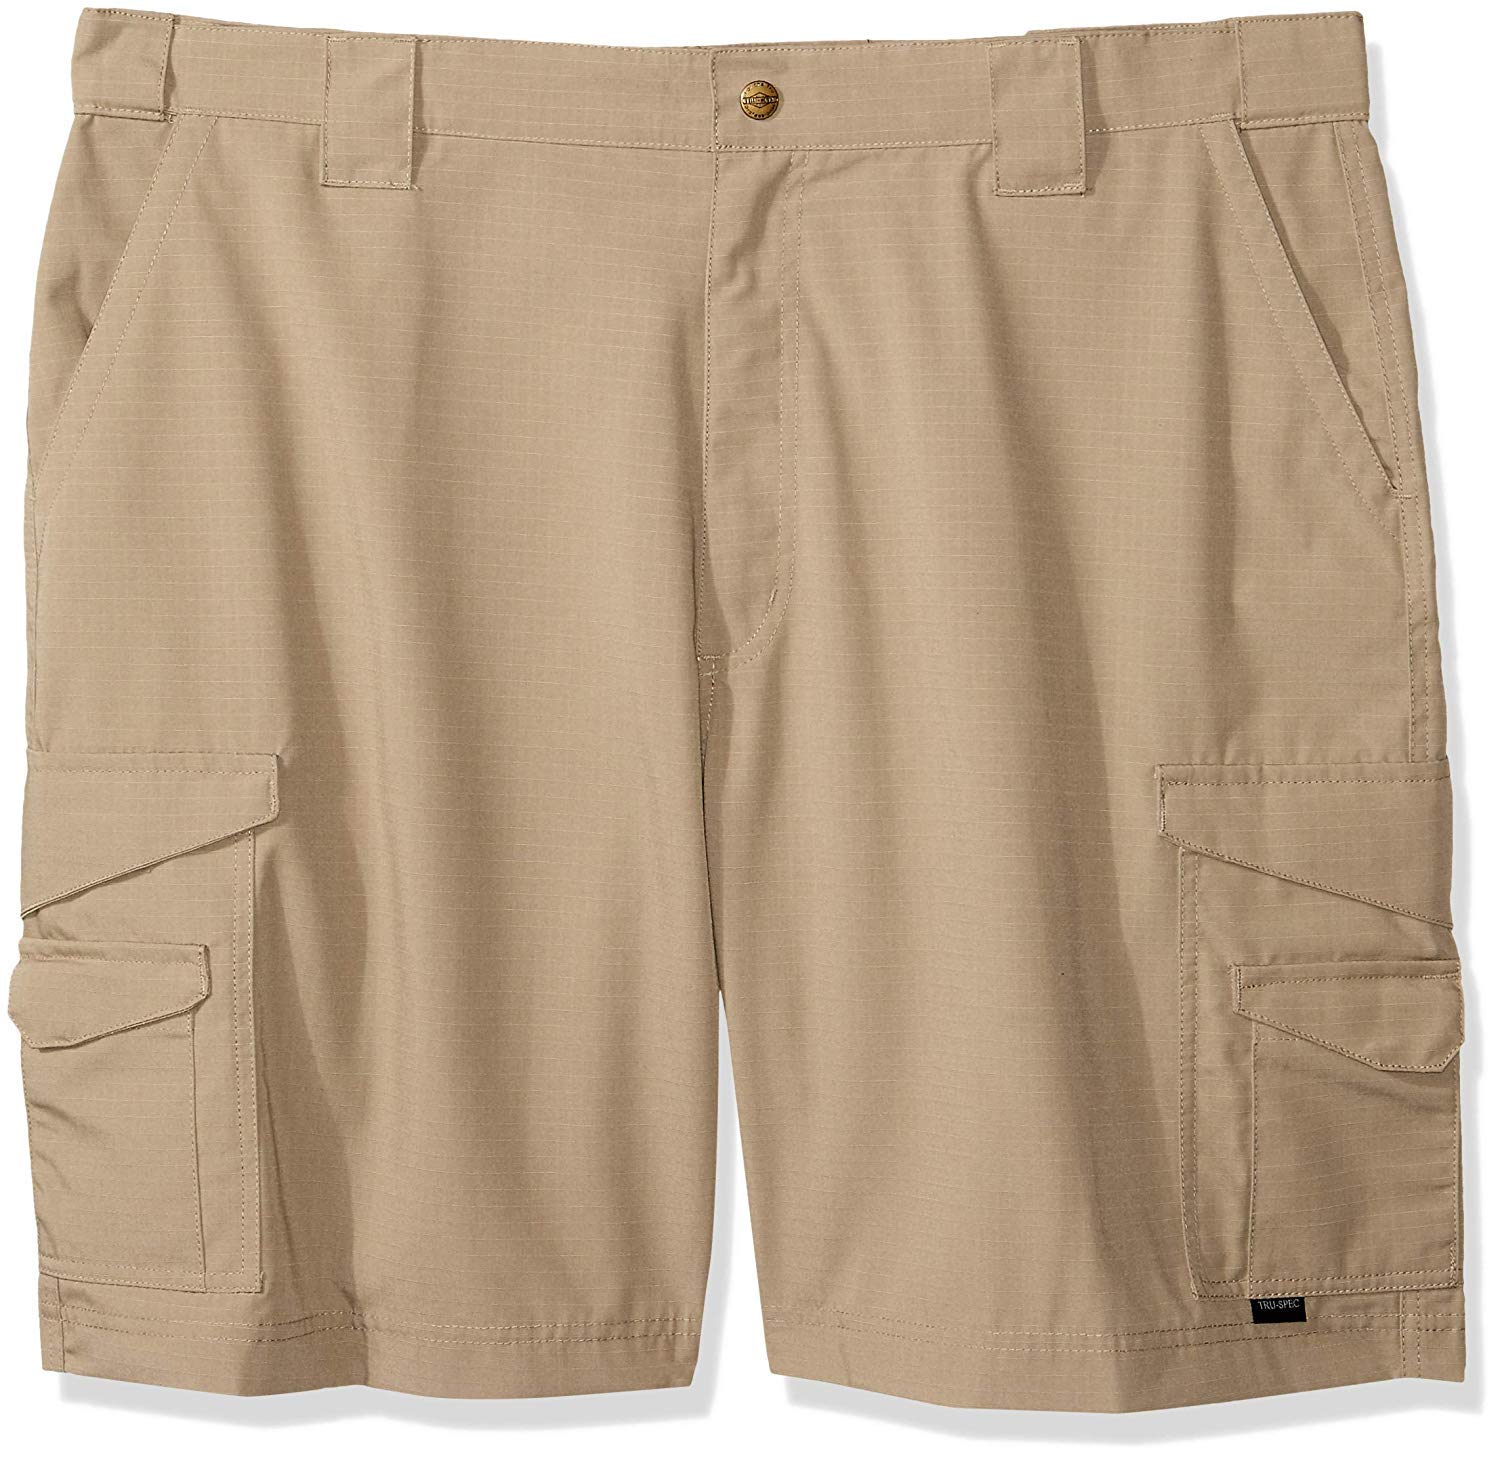 91a55e2eef TRU-SPEC Men's 24-7 Polyester Cotton Rip Stop 9-Inch Shorts: Amazon.ca:  Sports & Outdoors